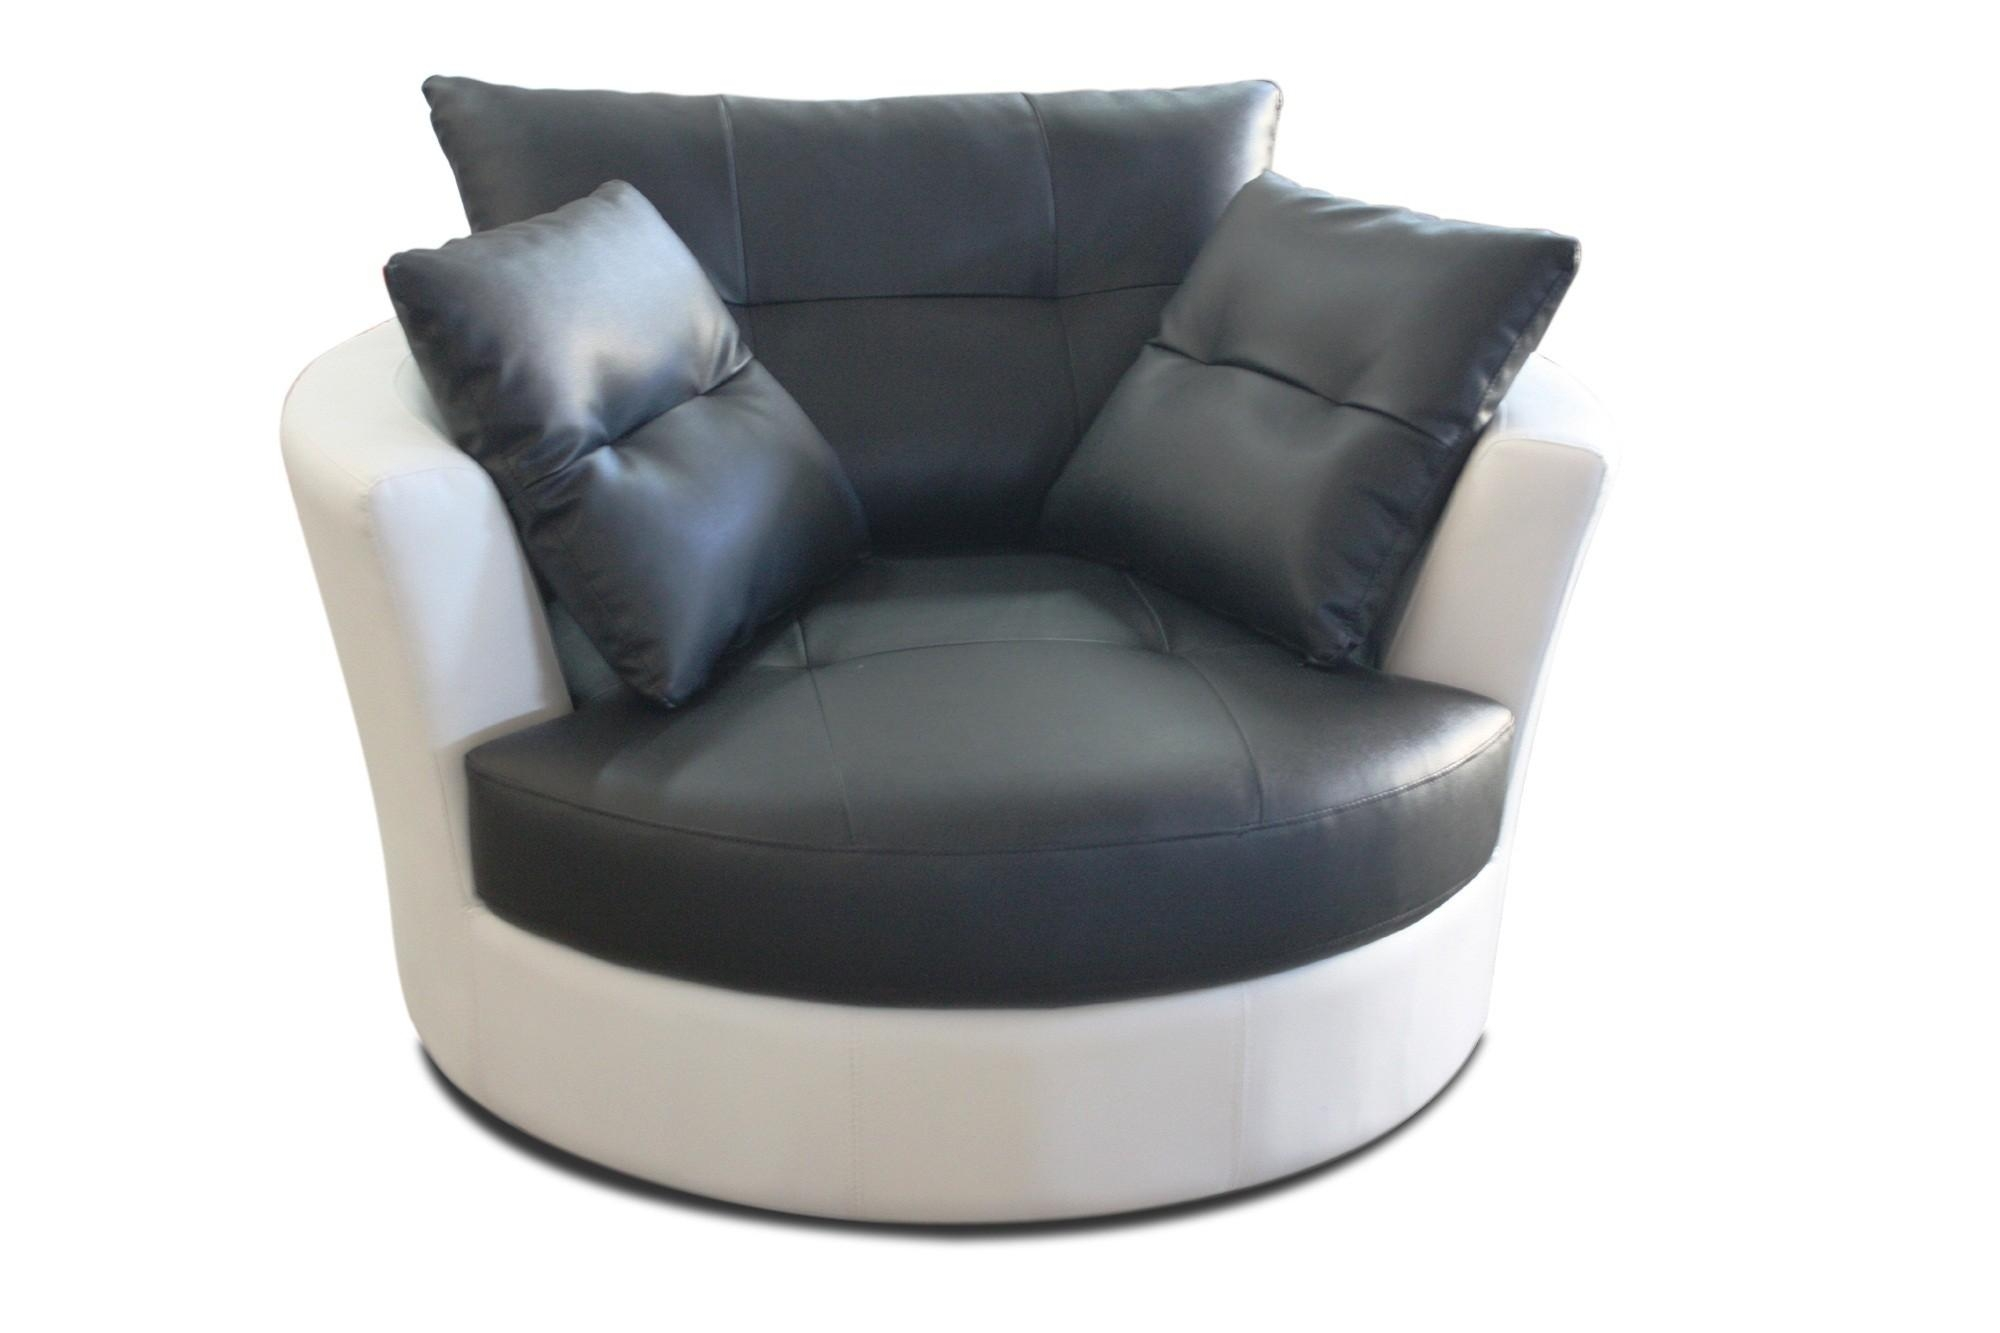 Lovely Swivel Sofa Chair 45 On Living Room Sofa Inspiration With Pertaining To Cuddler Swivel Sofa Chairs (View 3 of 20)